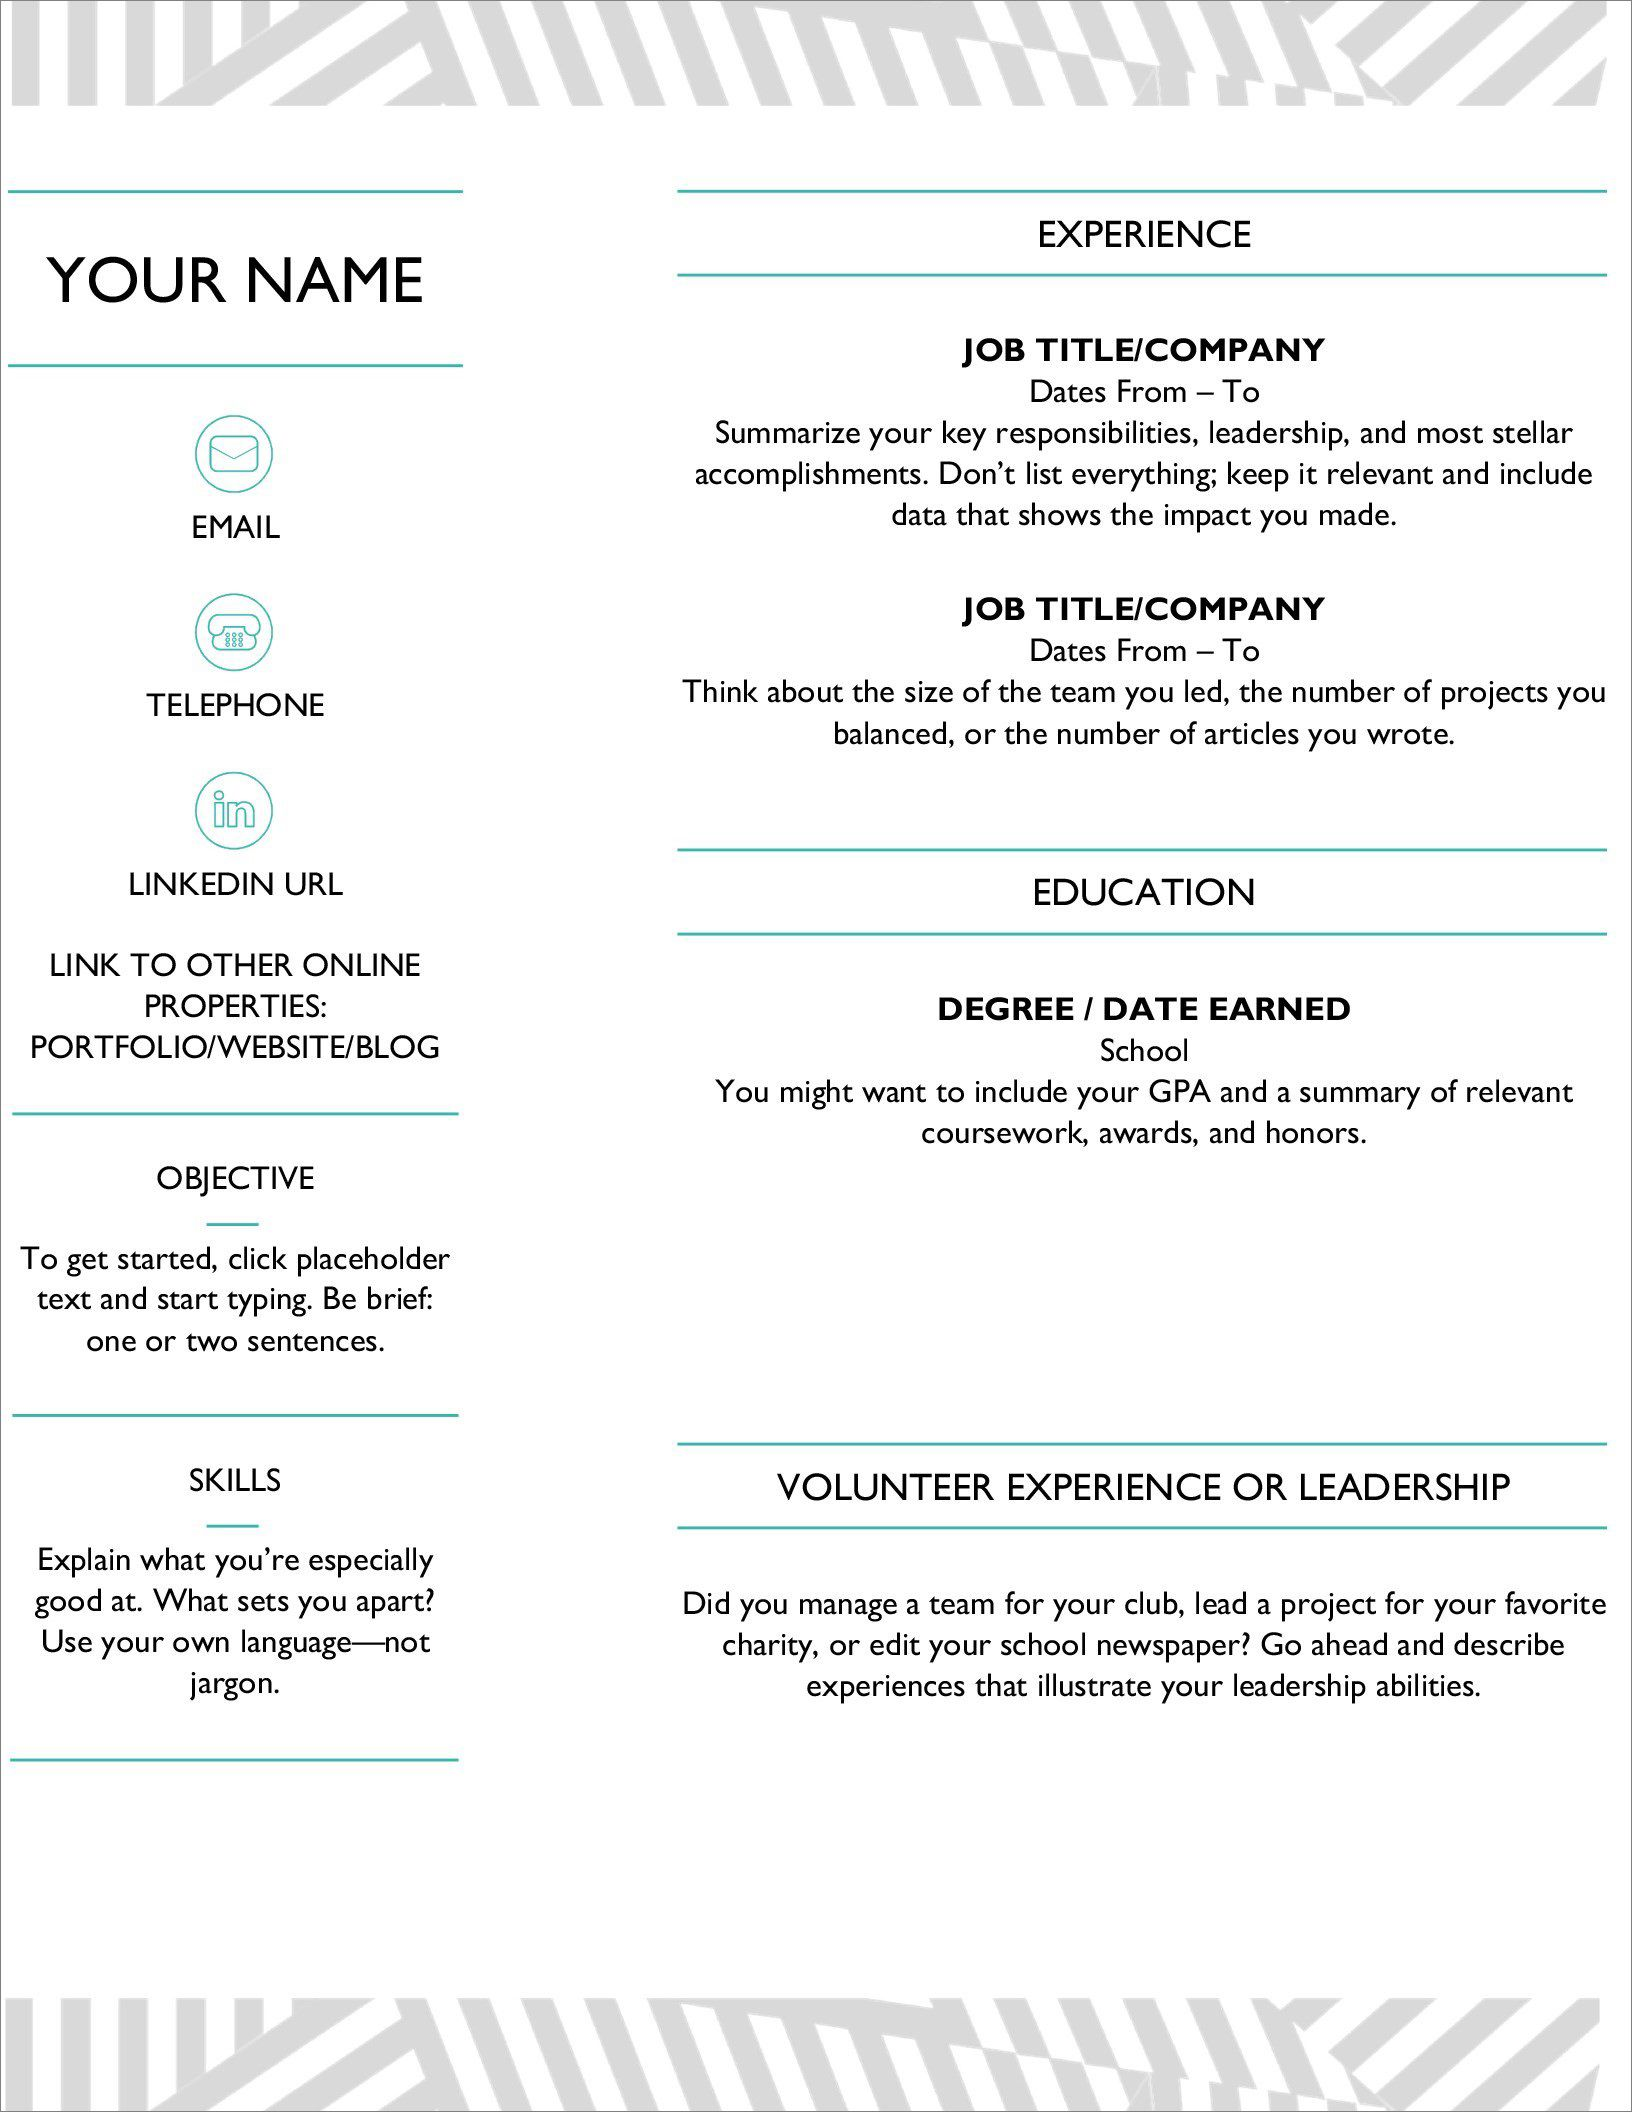 007 Exceptional Downloadable Resume Template Word Picture  Free Download Philippine 2018Full